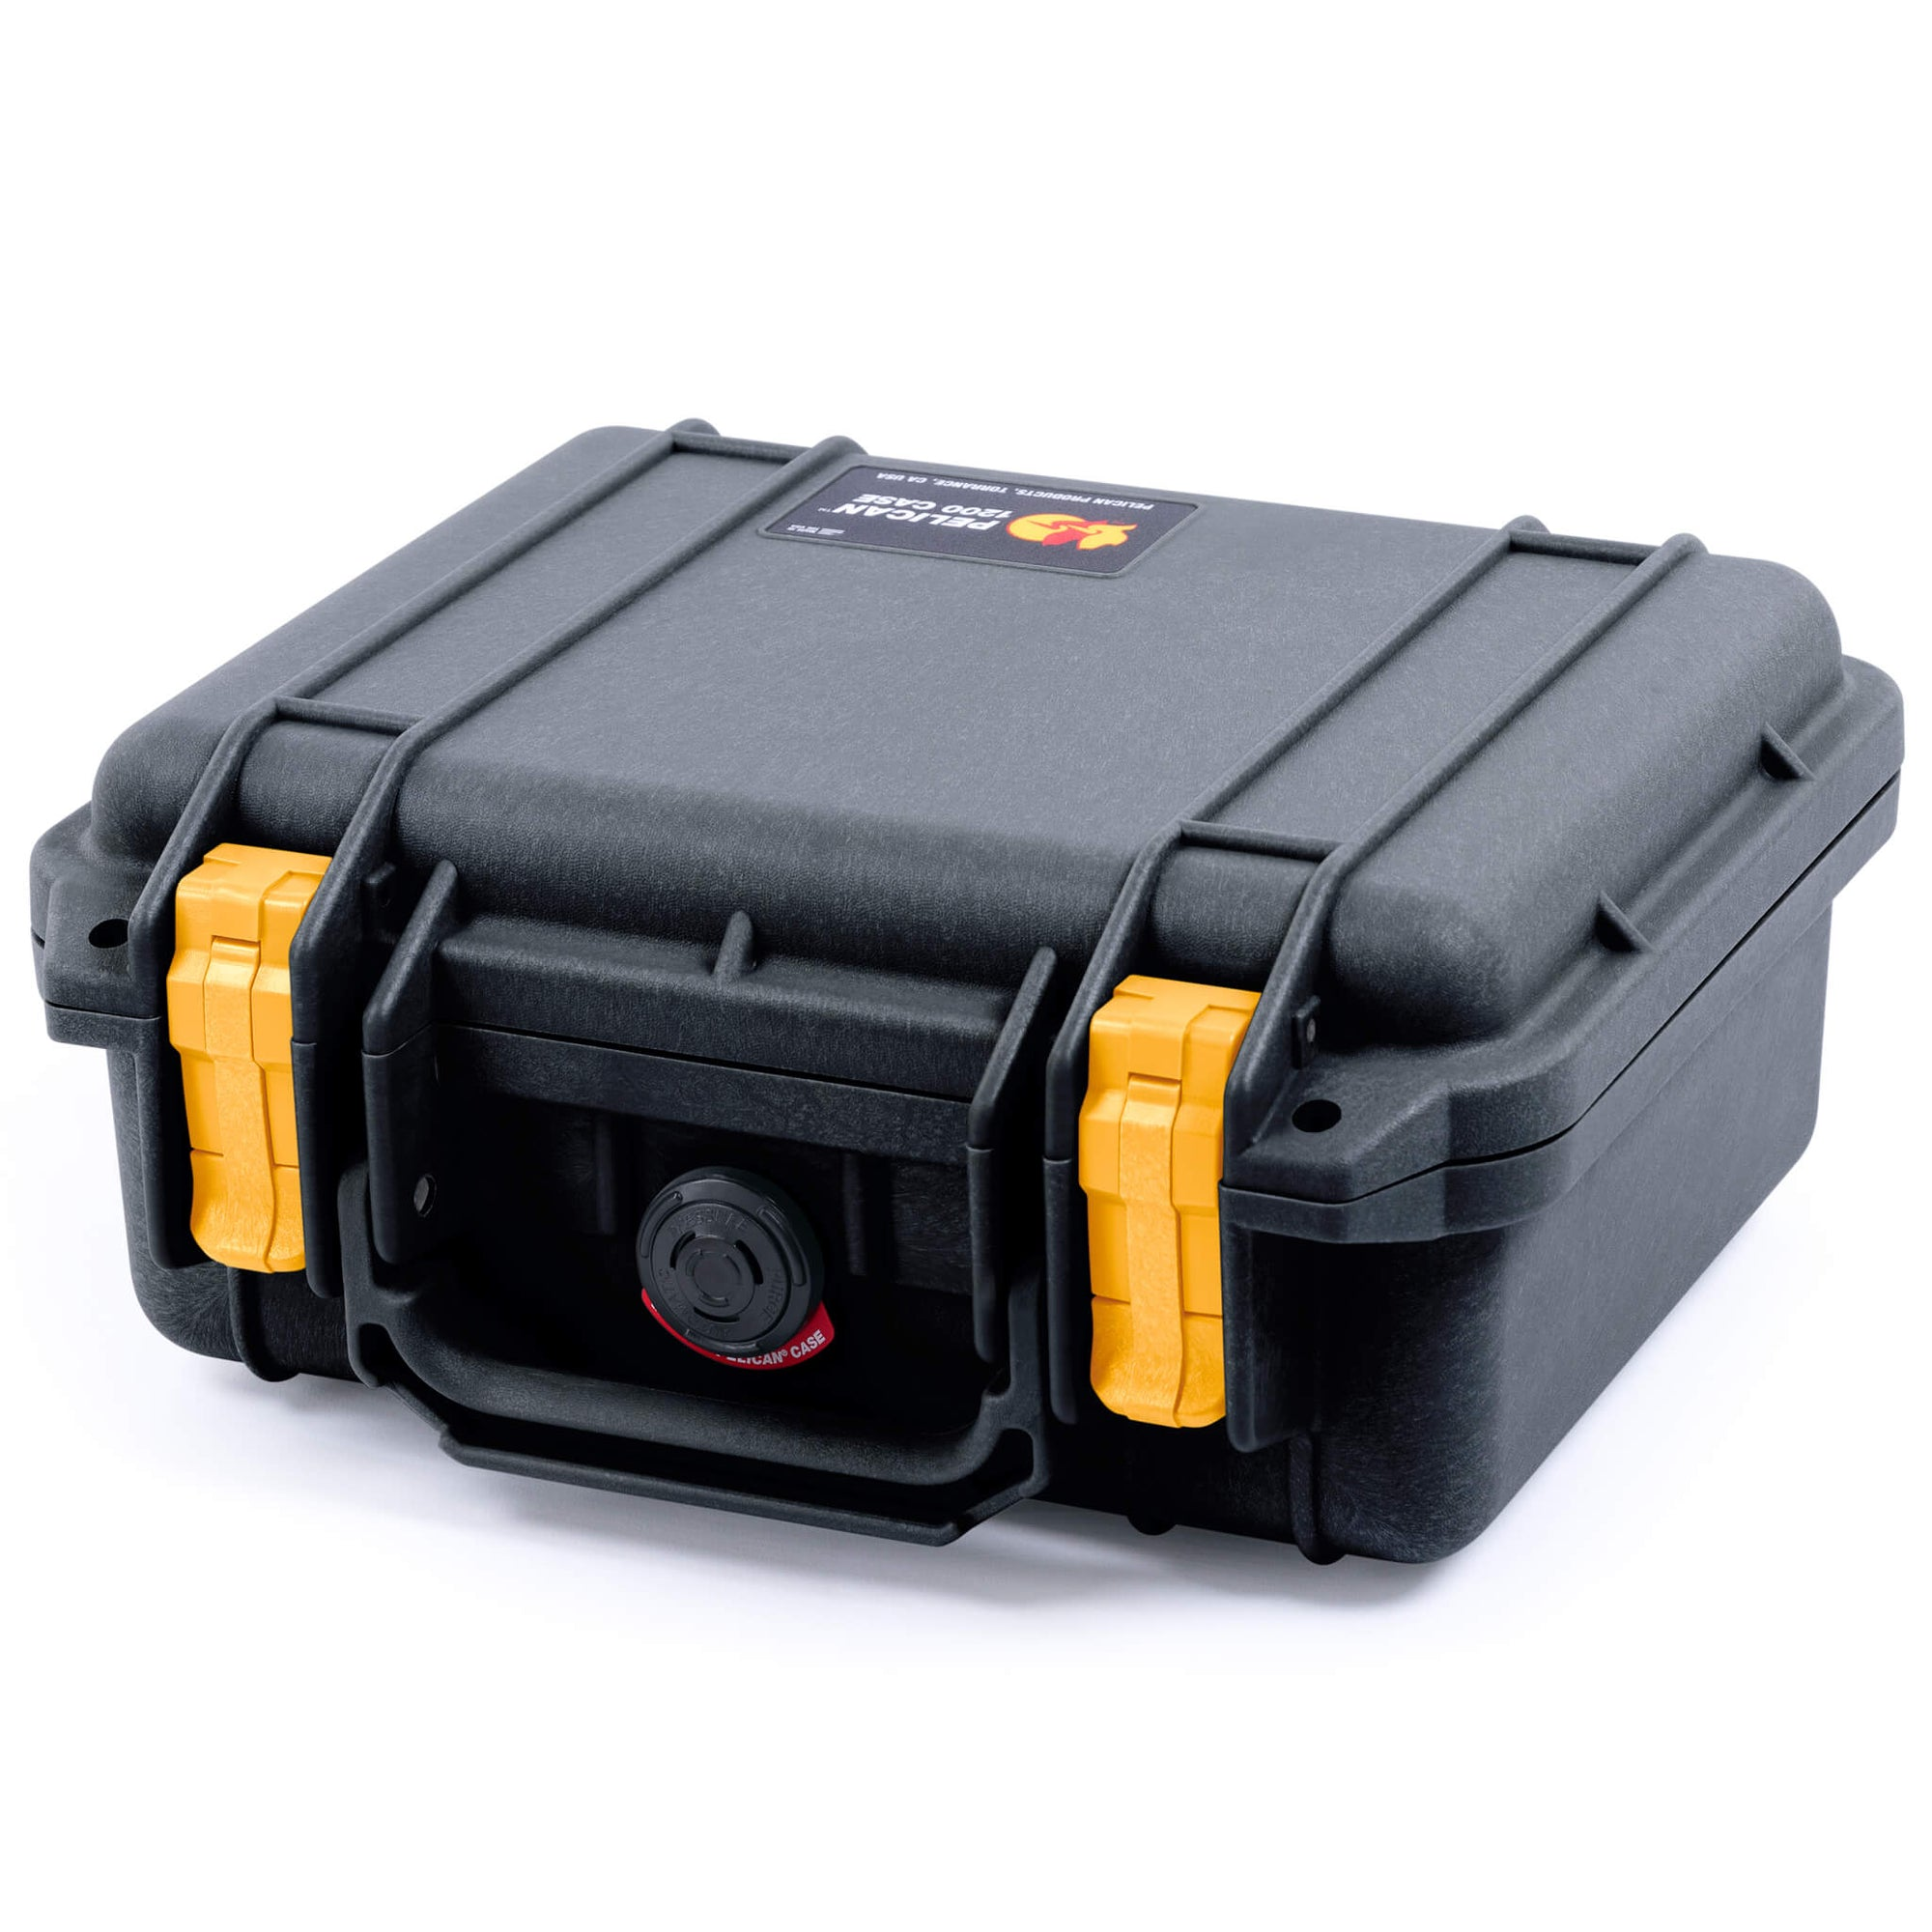 Pelican 1200 Case, Black with Yellow Handle & Latches - Pelican Color Case